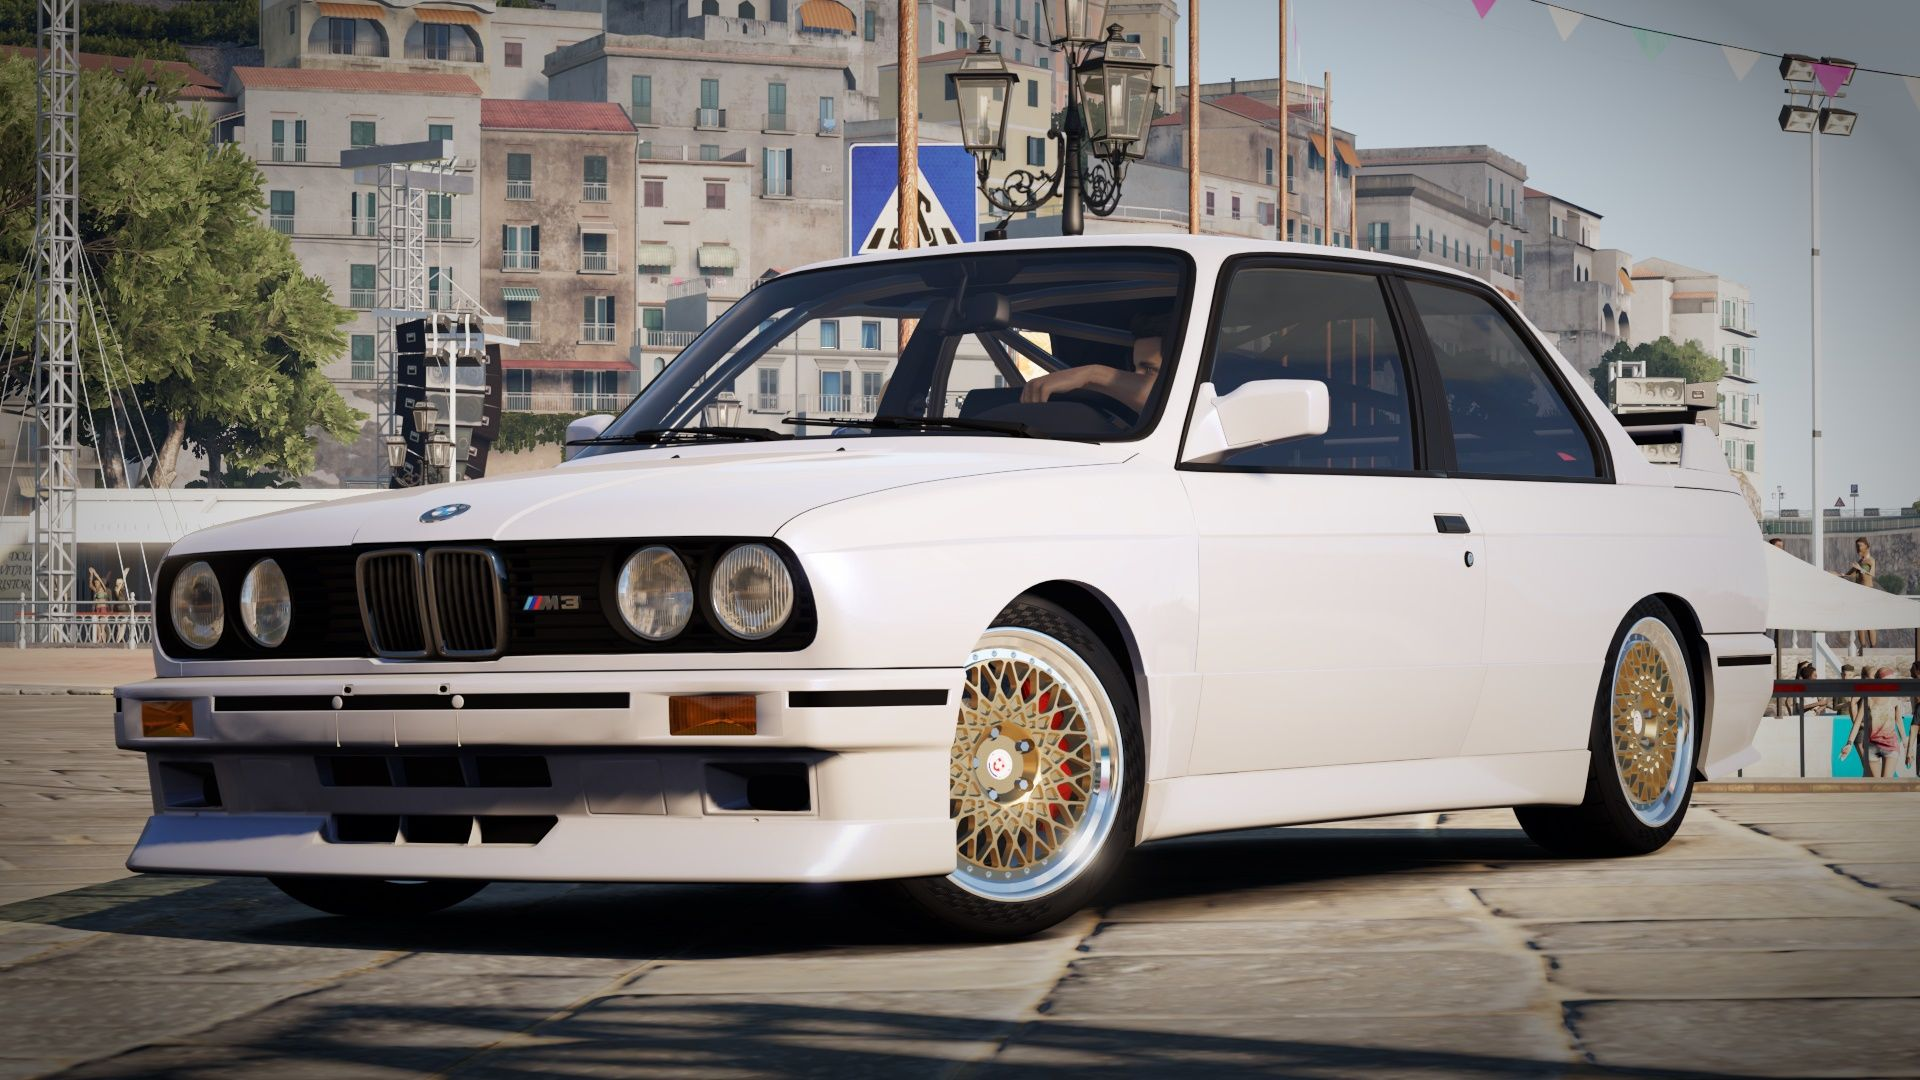 1991 Bmw E30 M3 This One Is Awd With A Big Inline 6 Forza 1989 Electrical Troubleshooting Manual